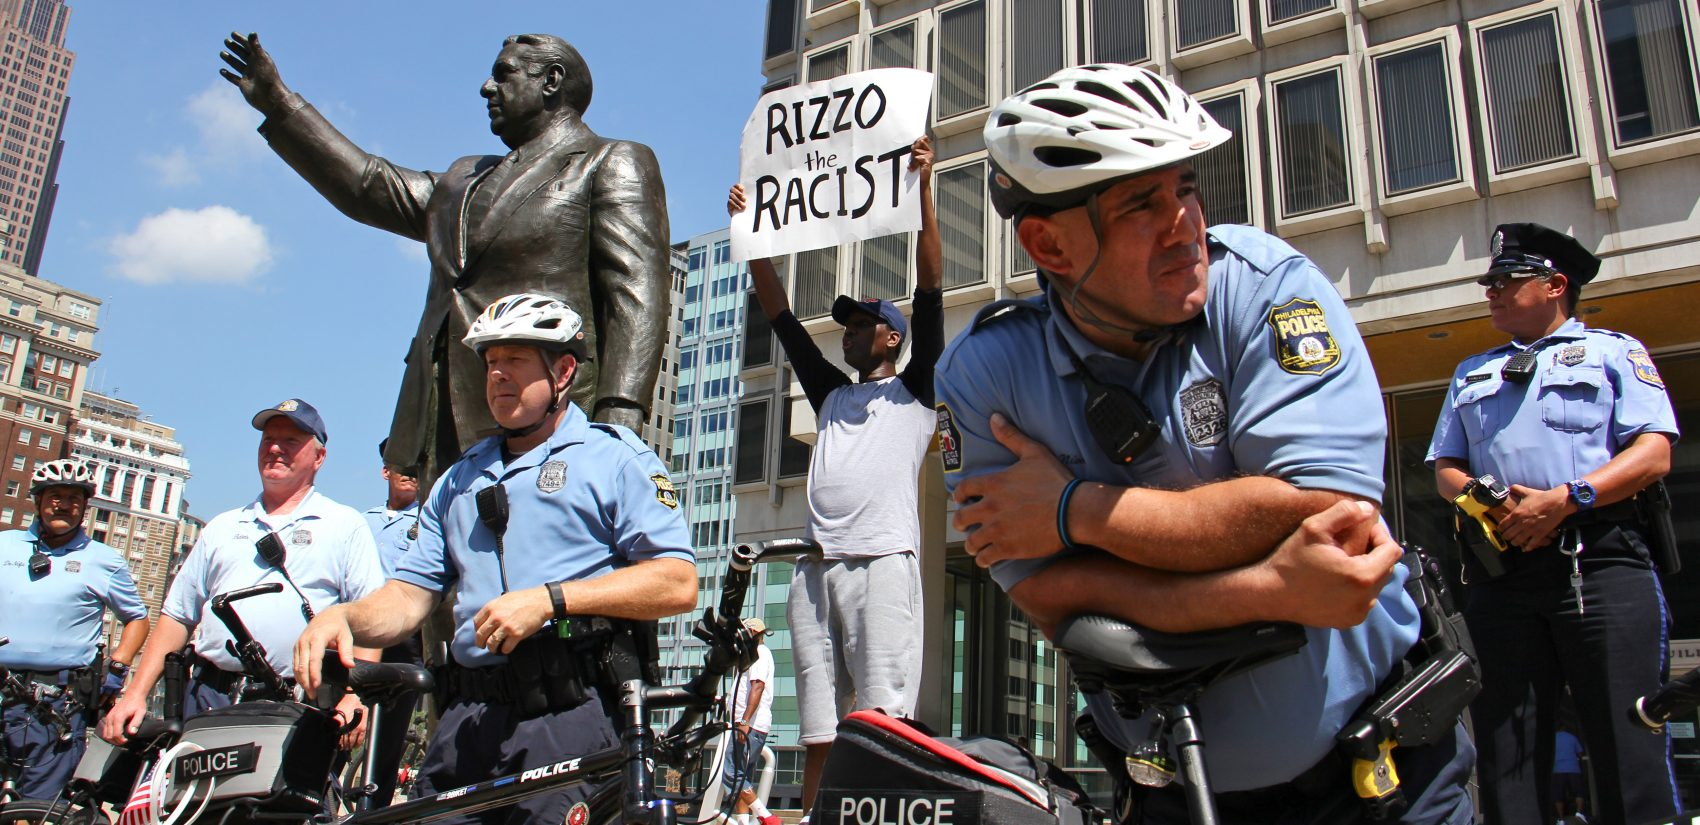 Philadelphia police protect the Frank Rizzo statue during a protest